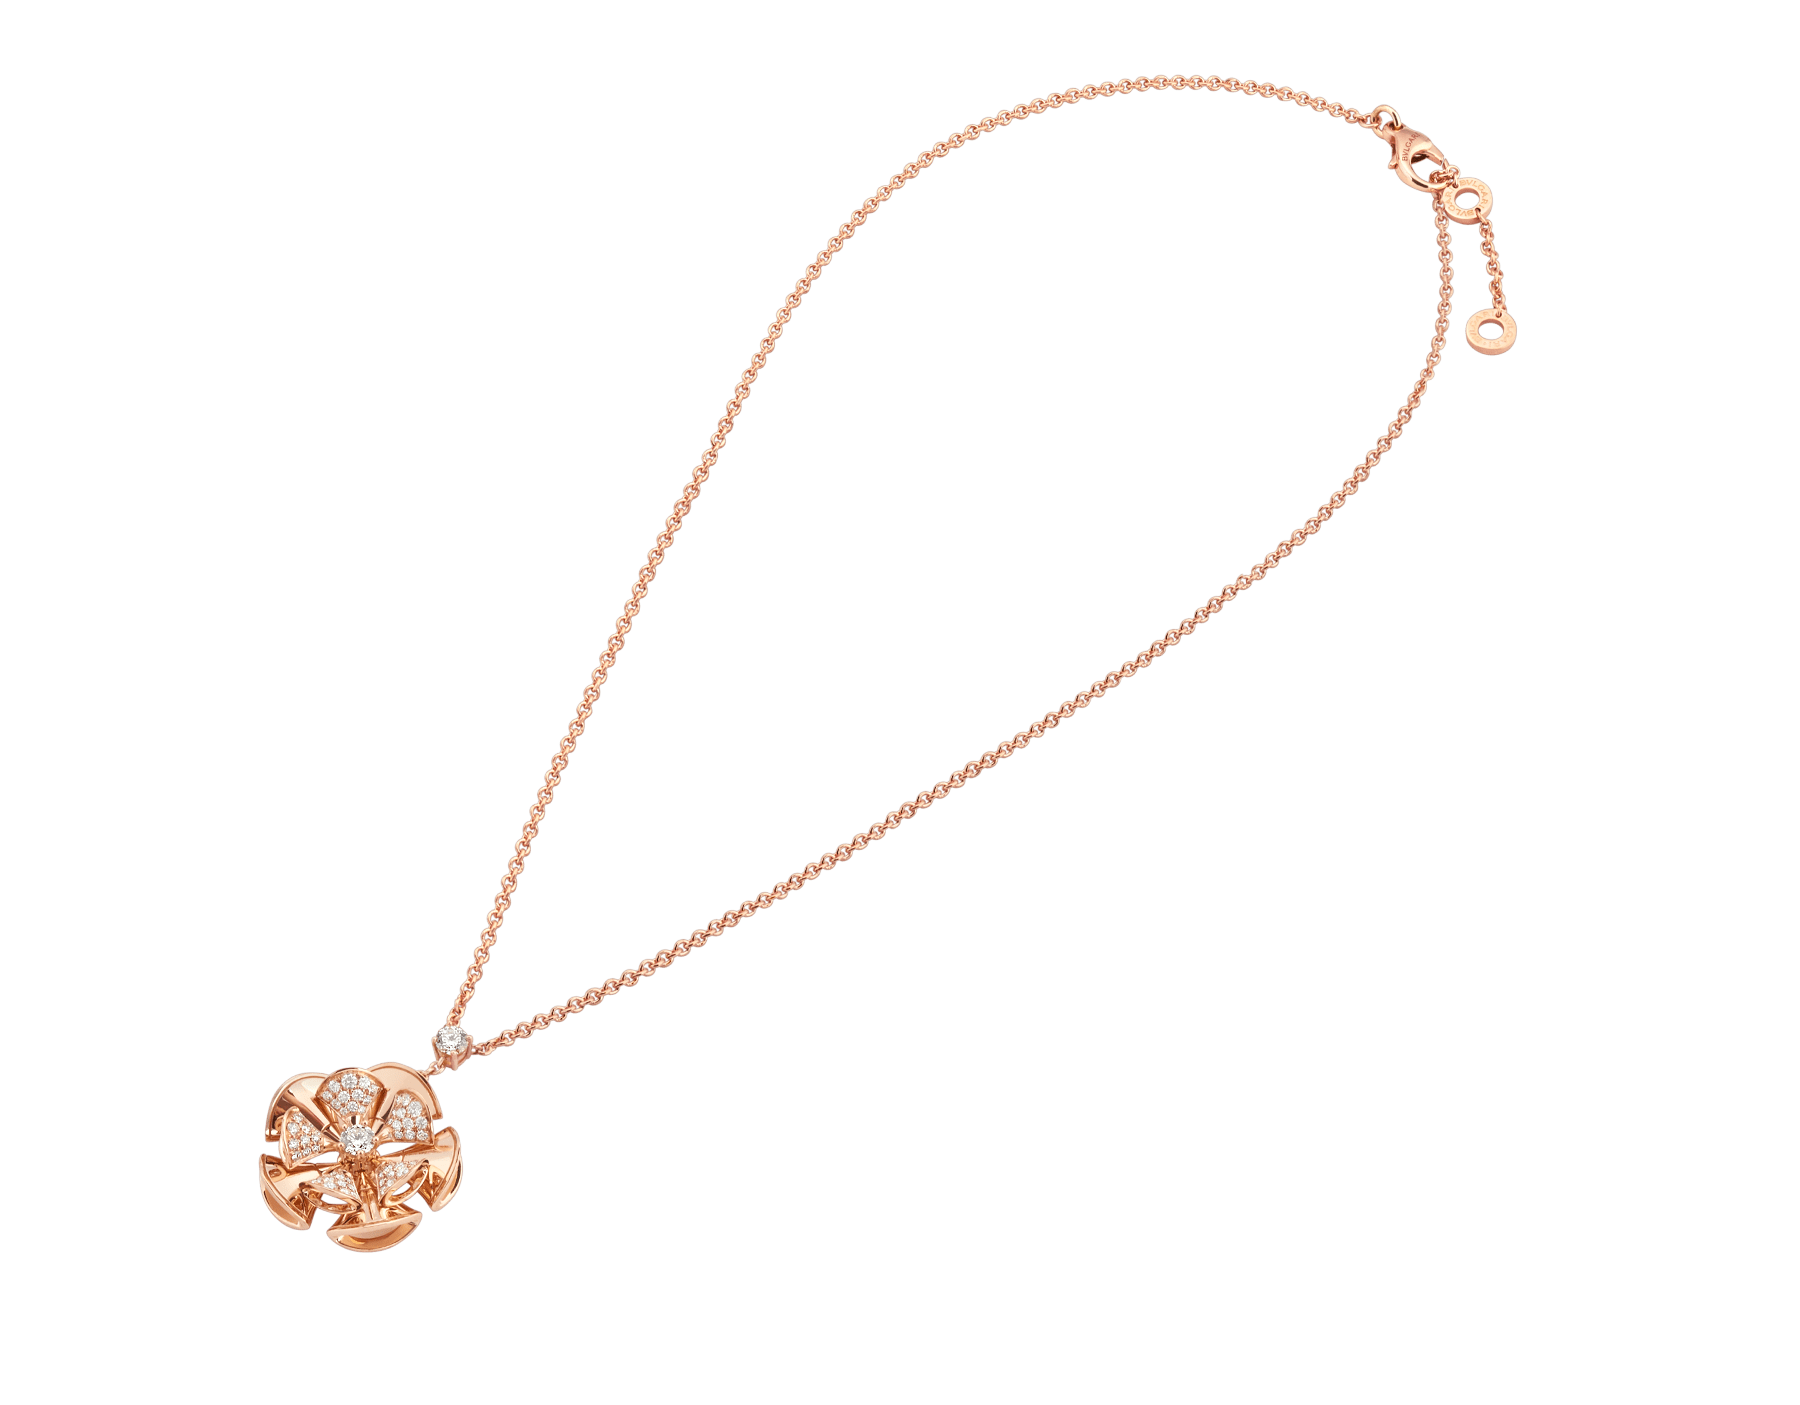 DIVAS' DREAM necklace in 18 kt rose gold with a diamond on the chain and 18 kt rose gold pendant set with central diamond and pavé diamonds. 350783 image 2